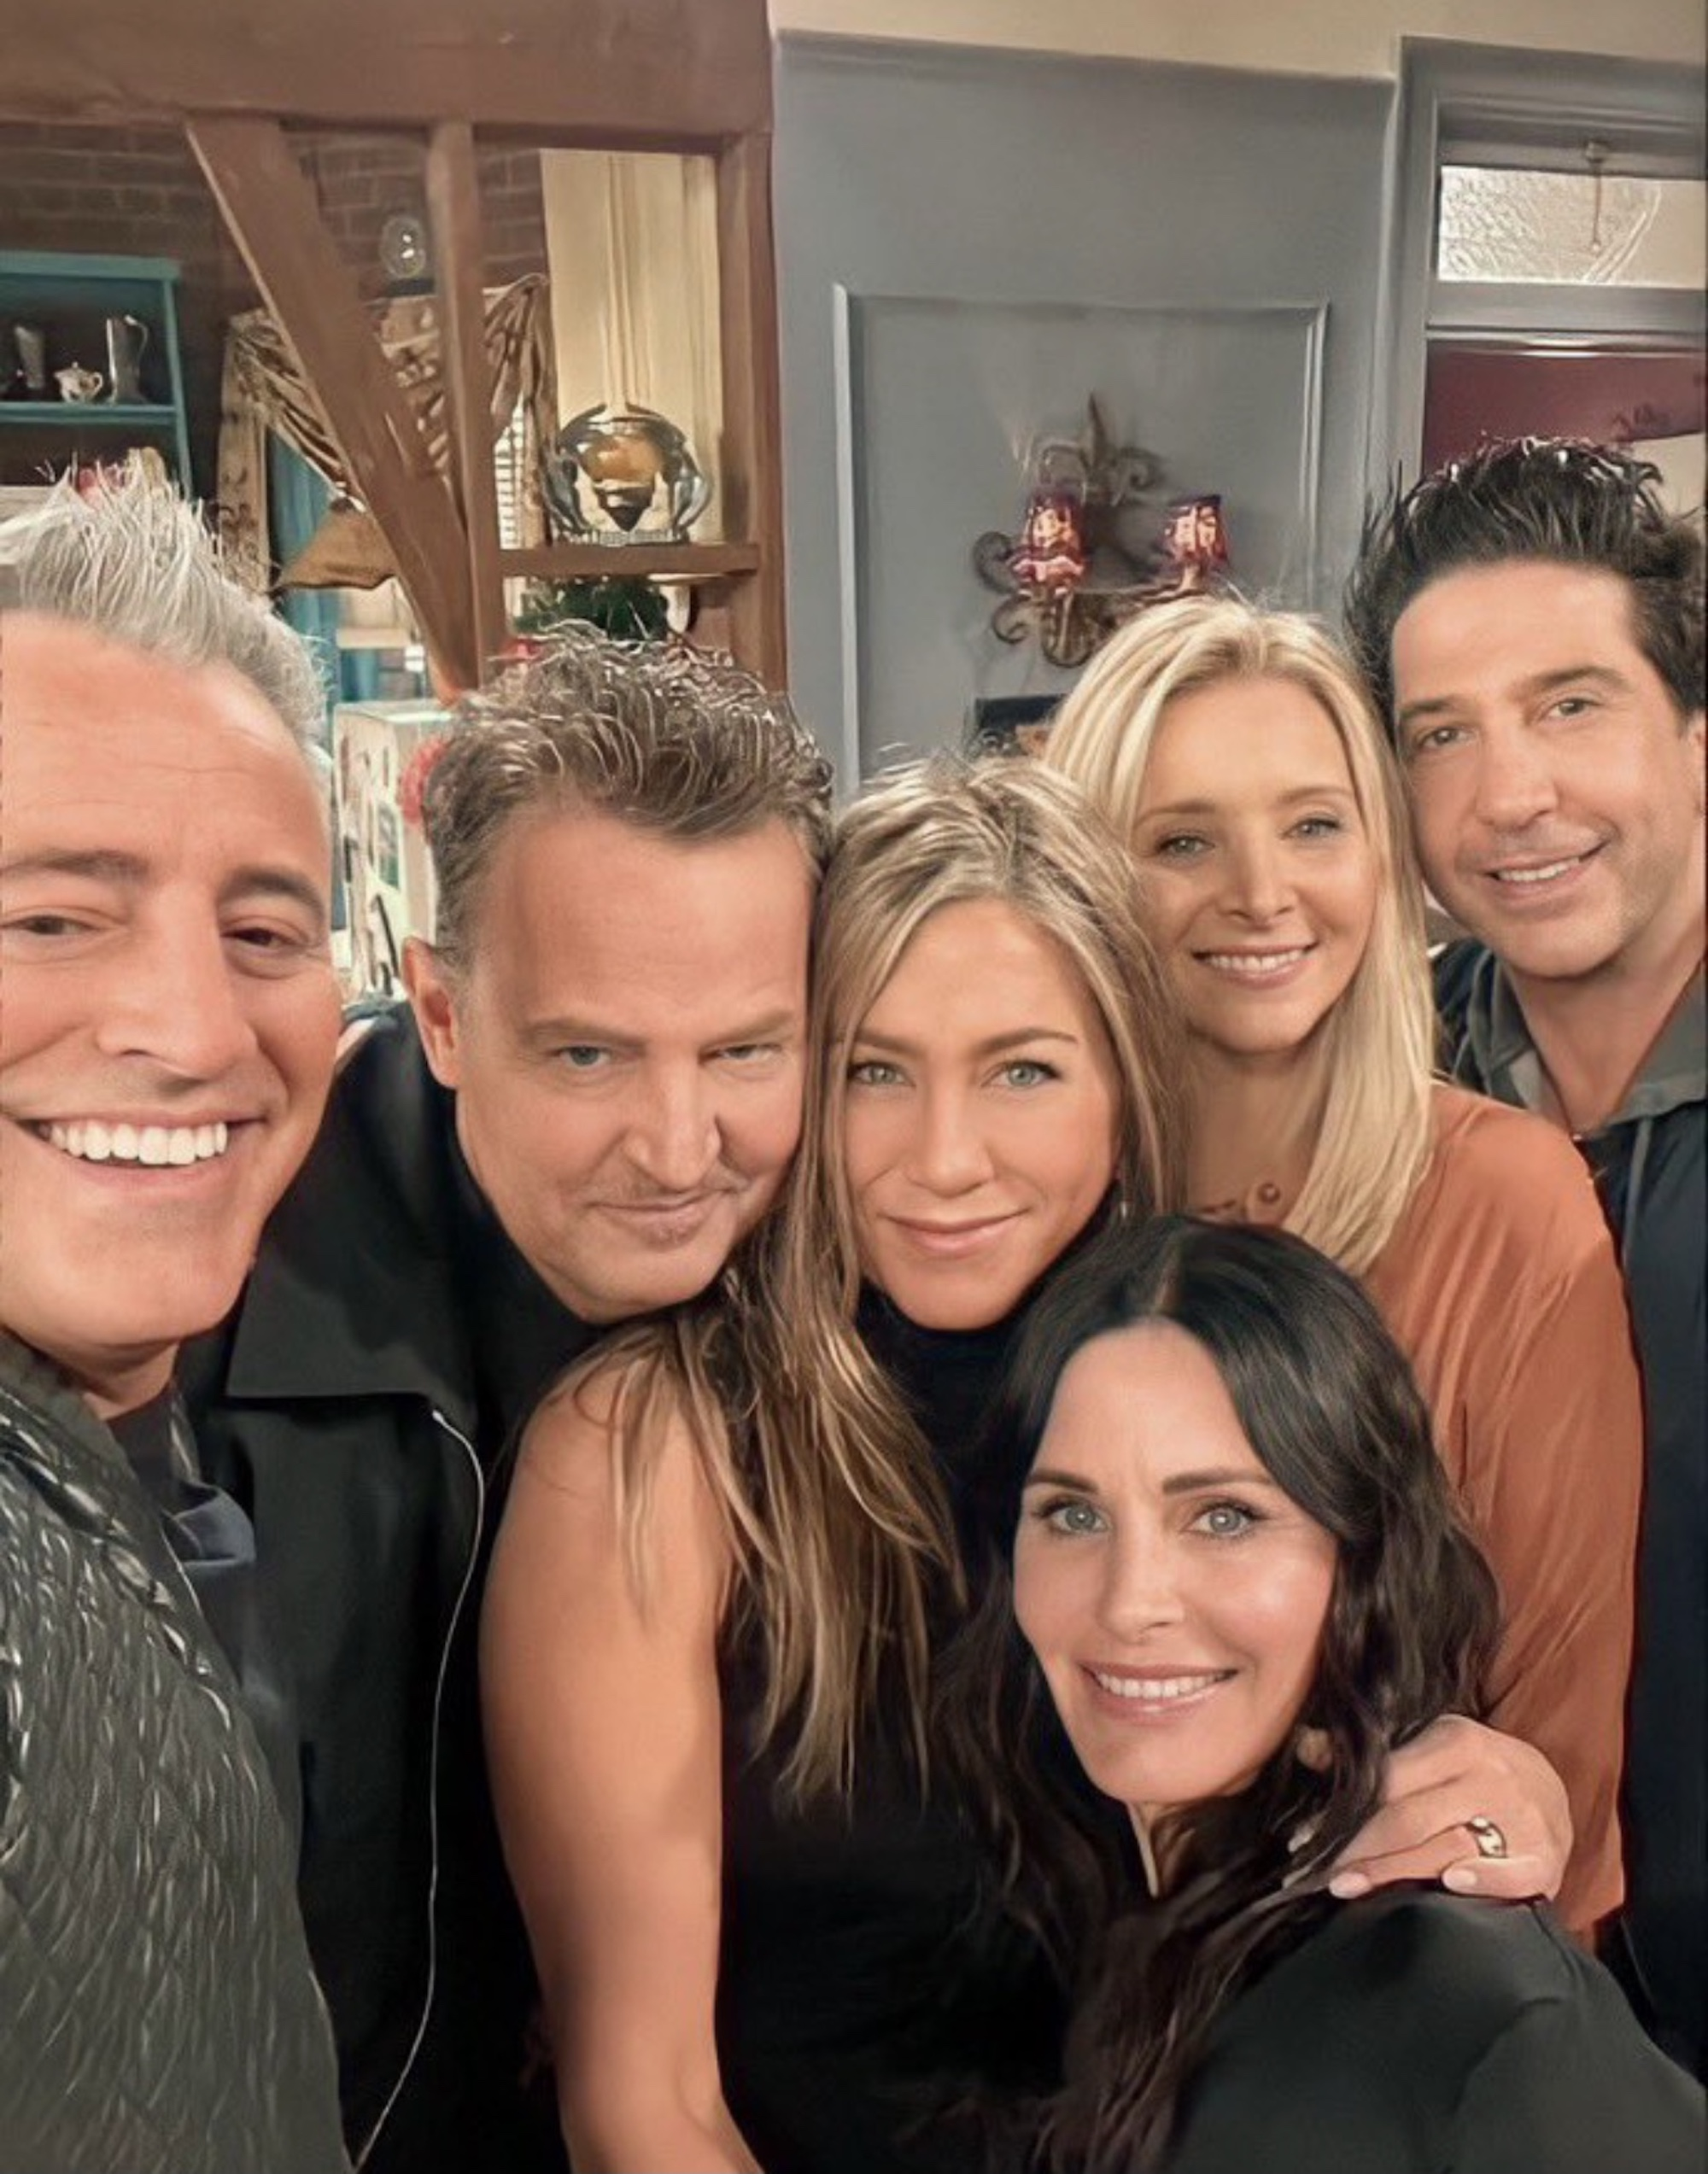 HBO Max Reveals The Trailer For the Friends Reunion